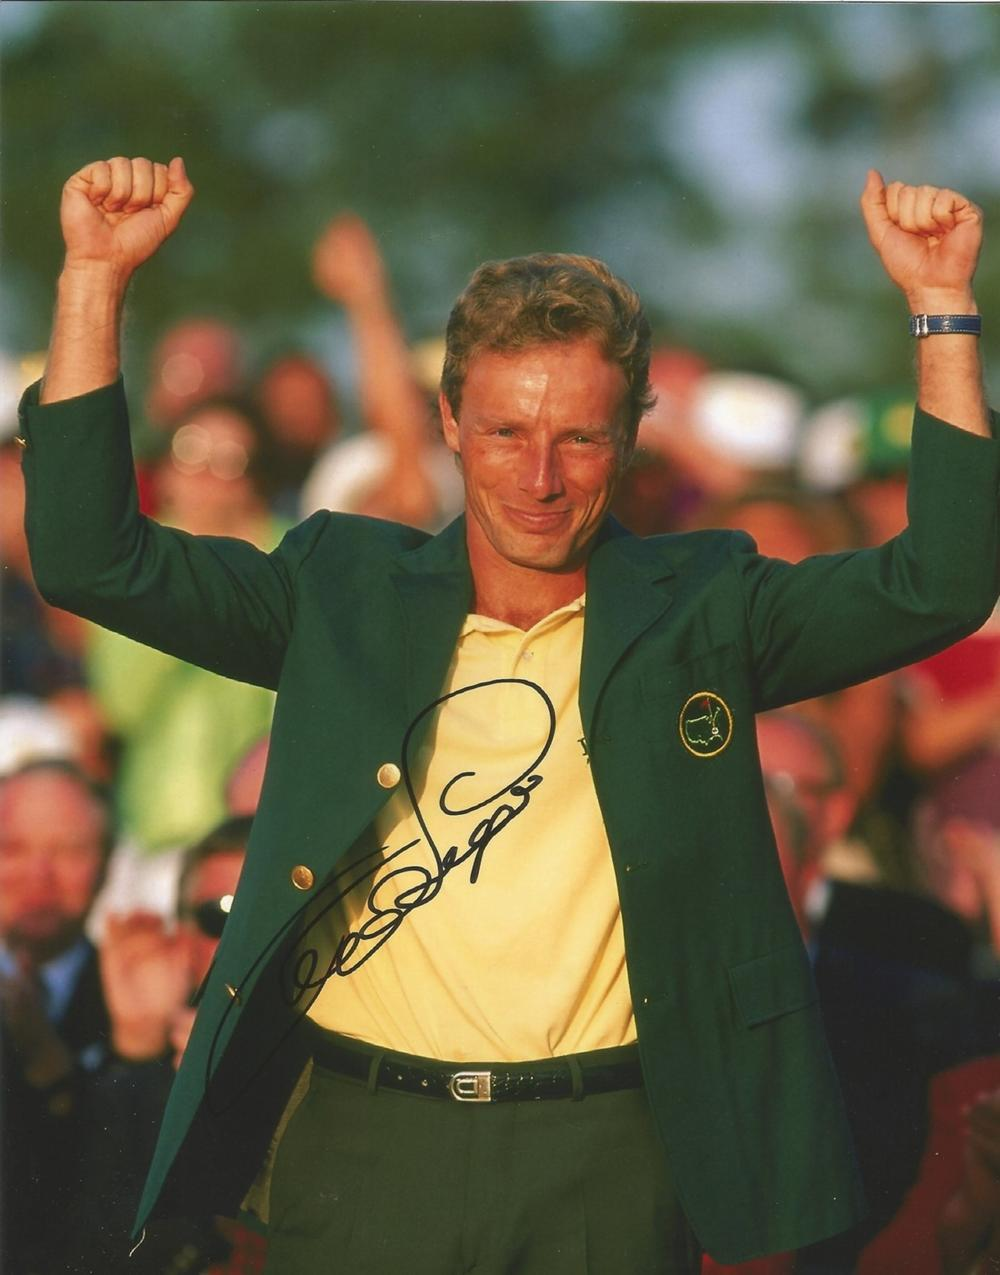 Bernhard Langer signed 10x8 colour golf photo. Good condition. All autographs come with a